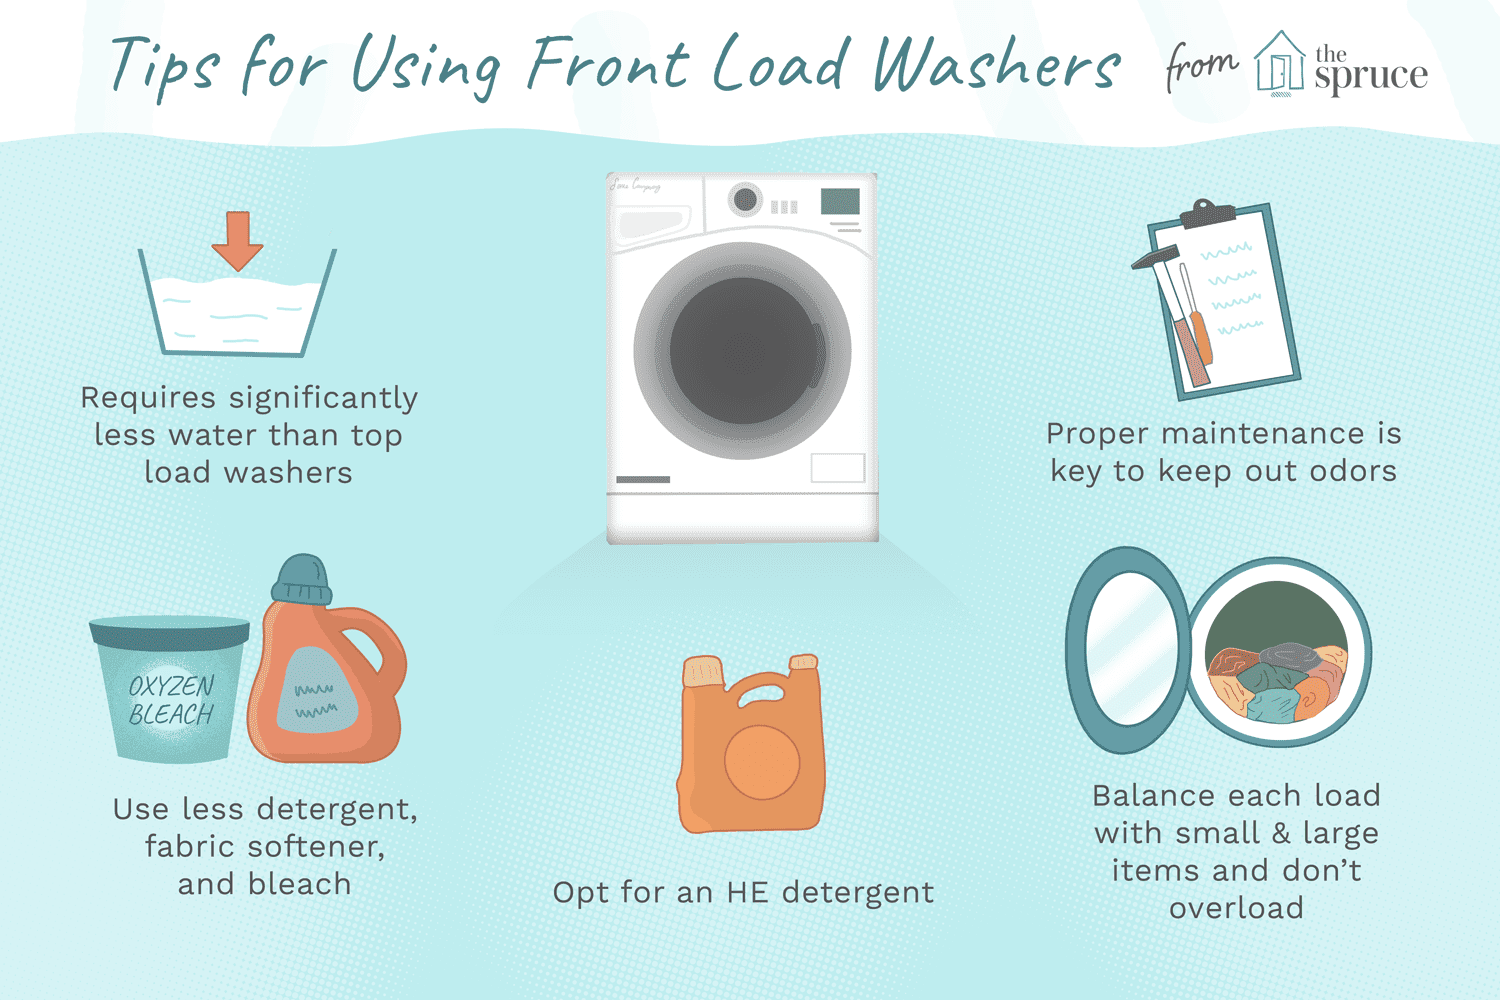 Lg Washing Machine Not Cleaning Clothes Properly - Photo Of